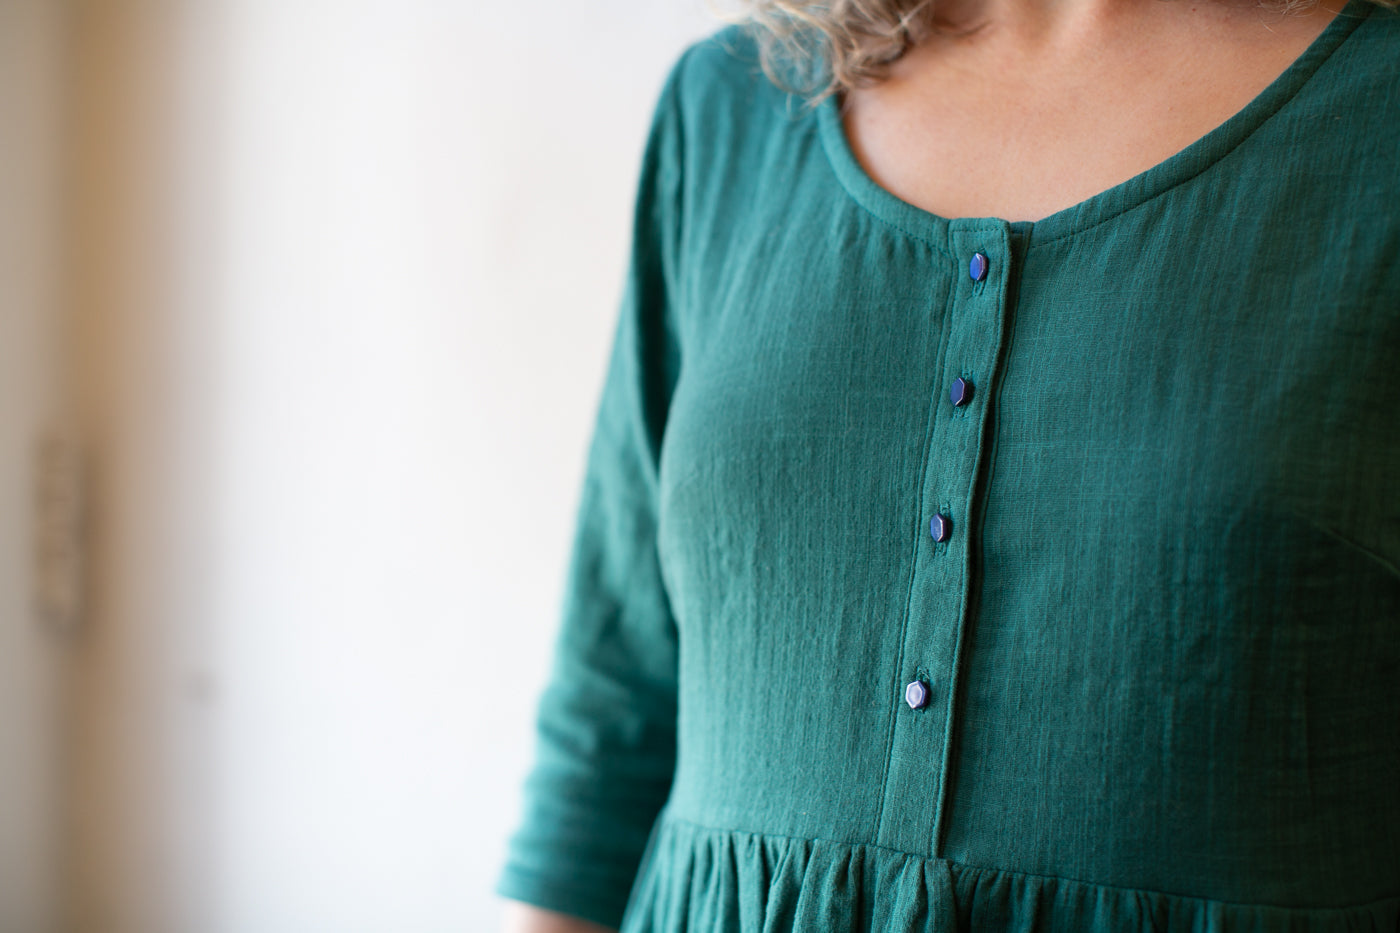 Photograph showing geometric shape of Atelier Brunette buttons on a Spruce colored double gauze dress.  Up close photograph of buttons.